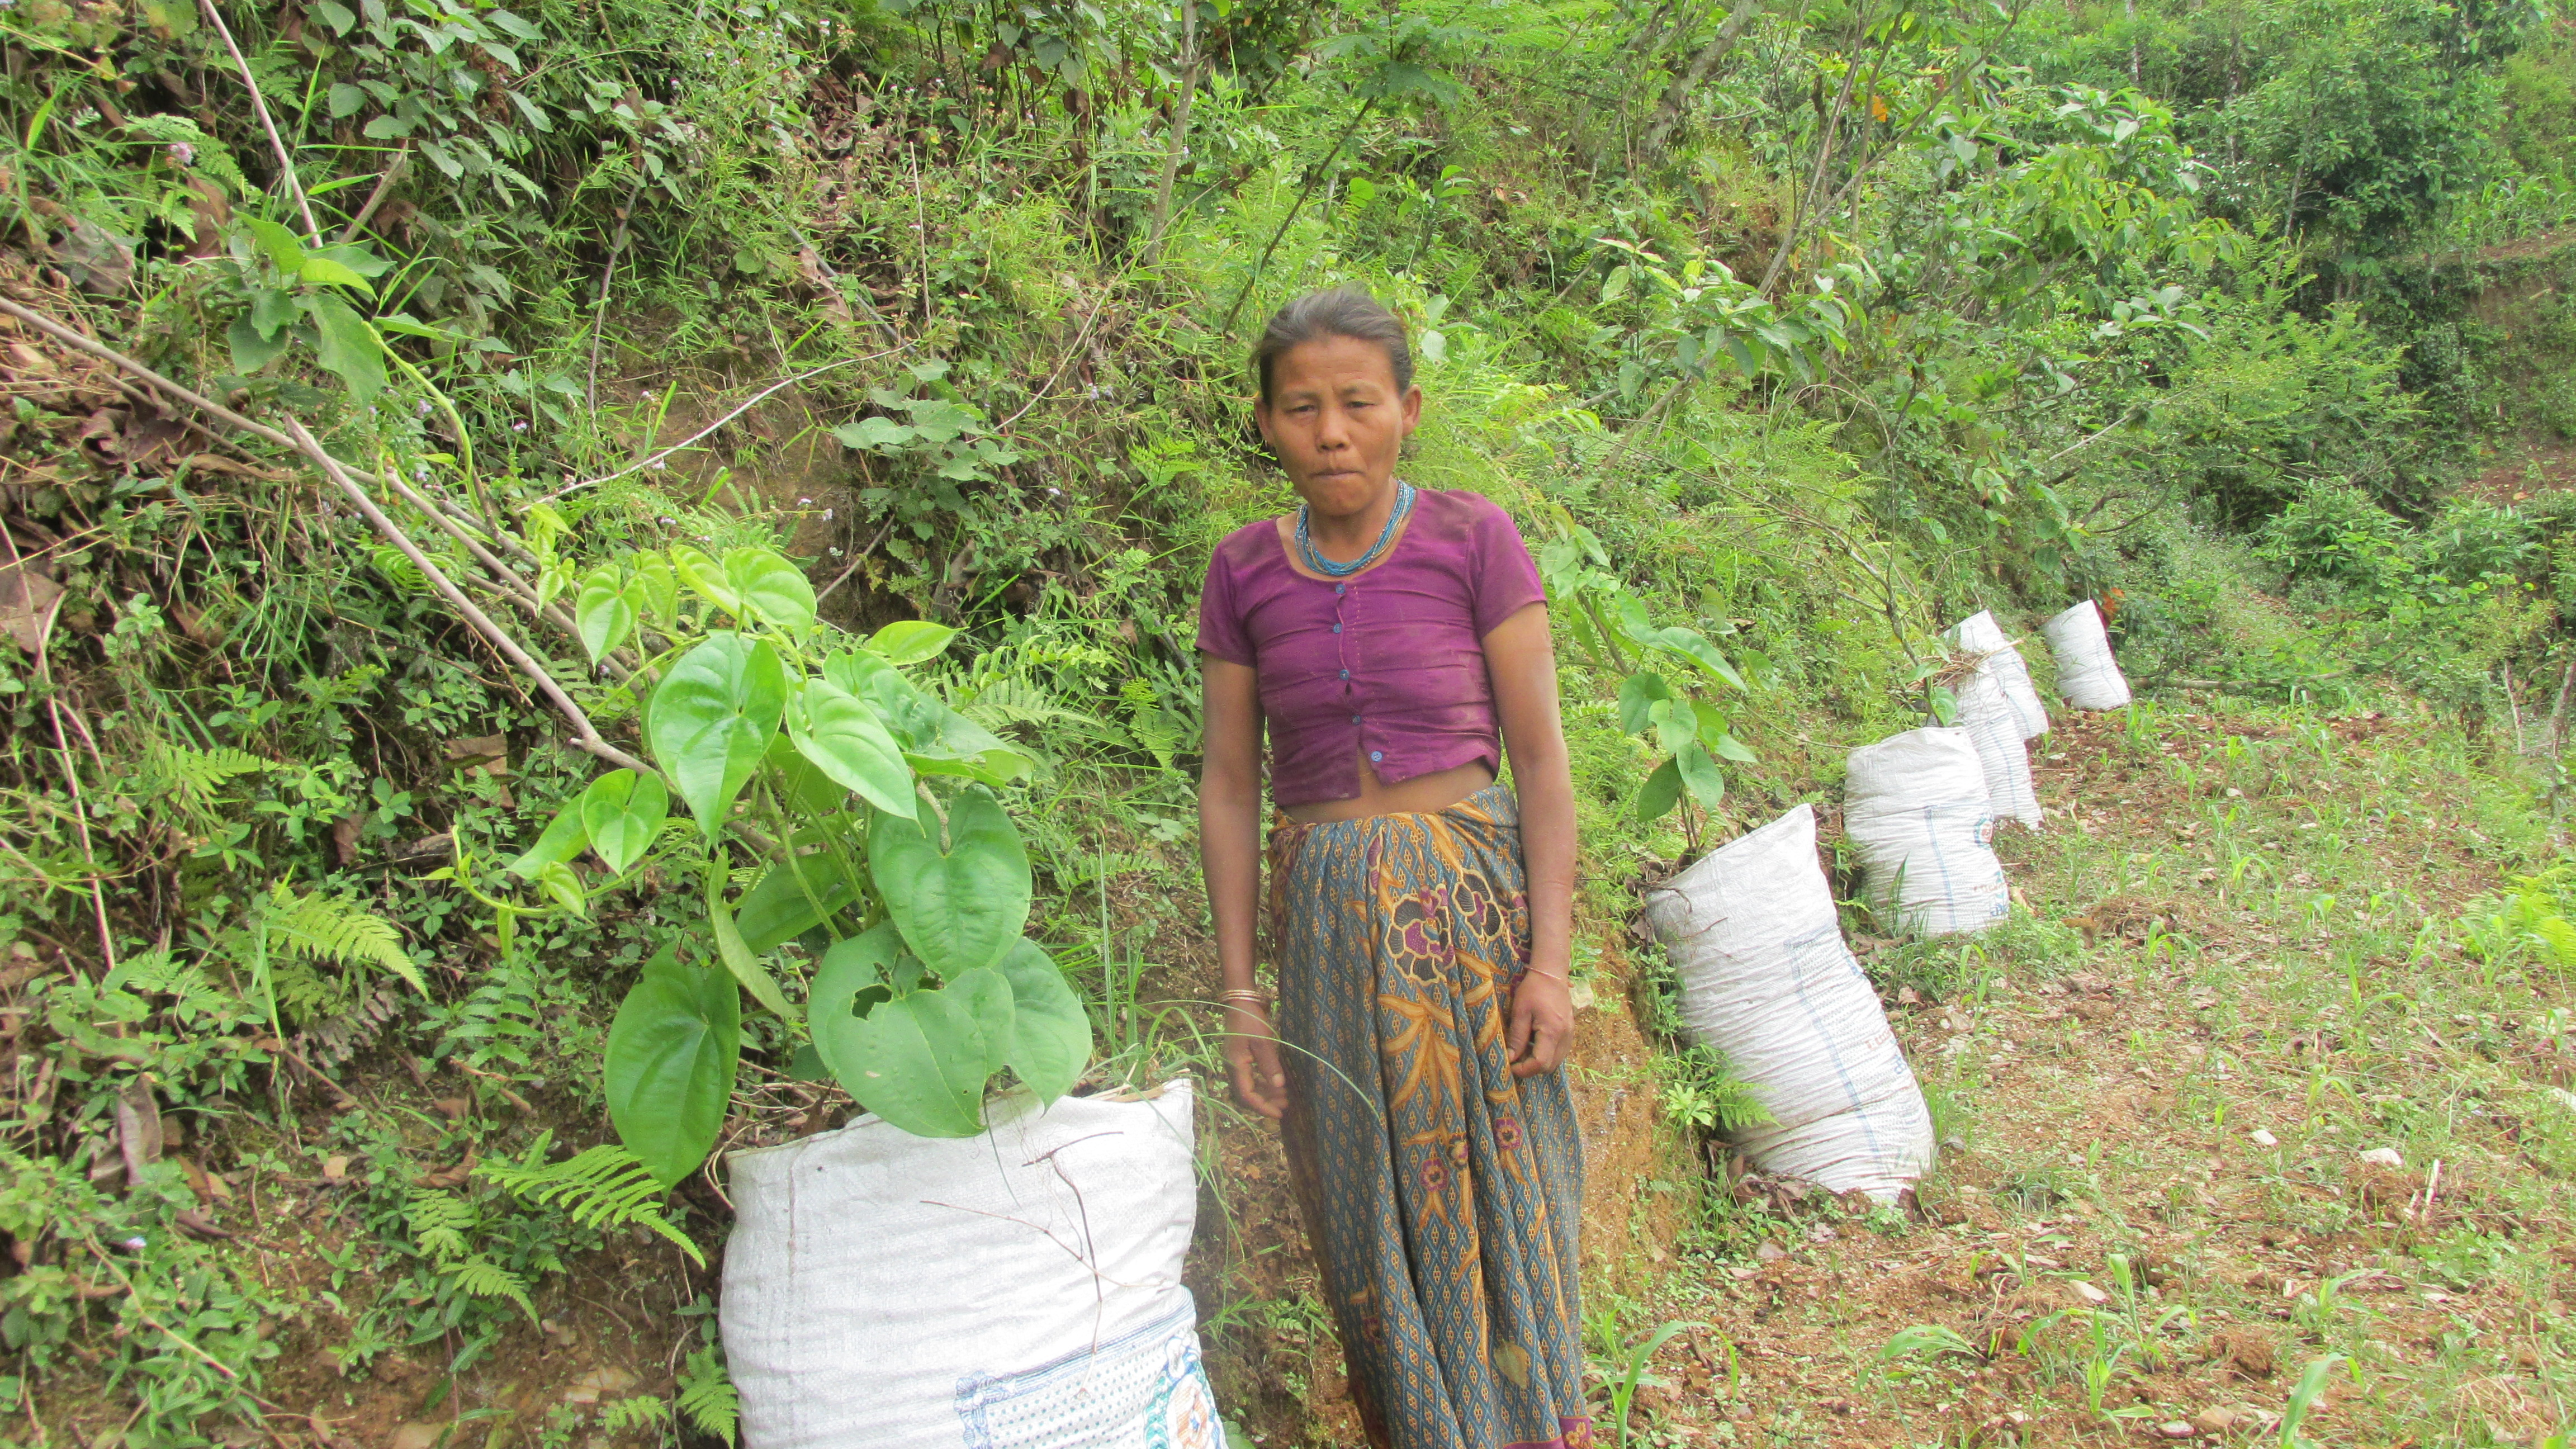 Demonstration of yam cultivation in sacks at Laitak village